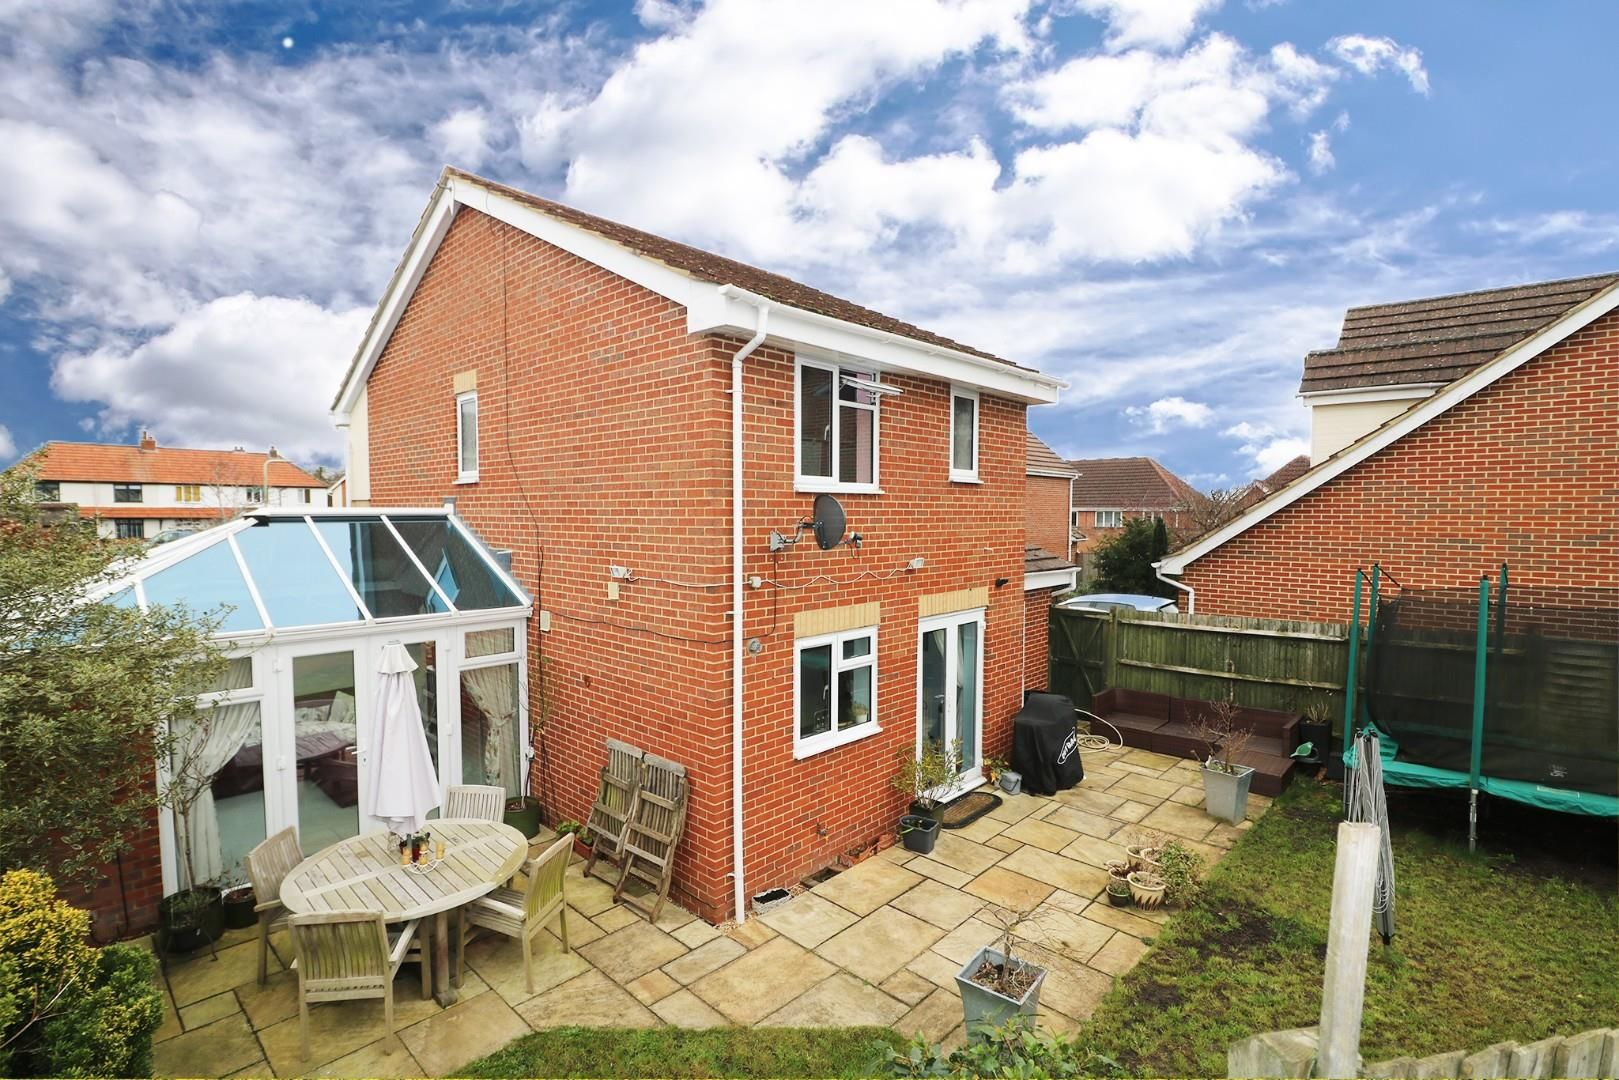 3 bed house for sale in Woodley 8